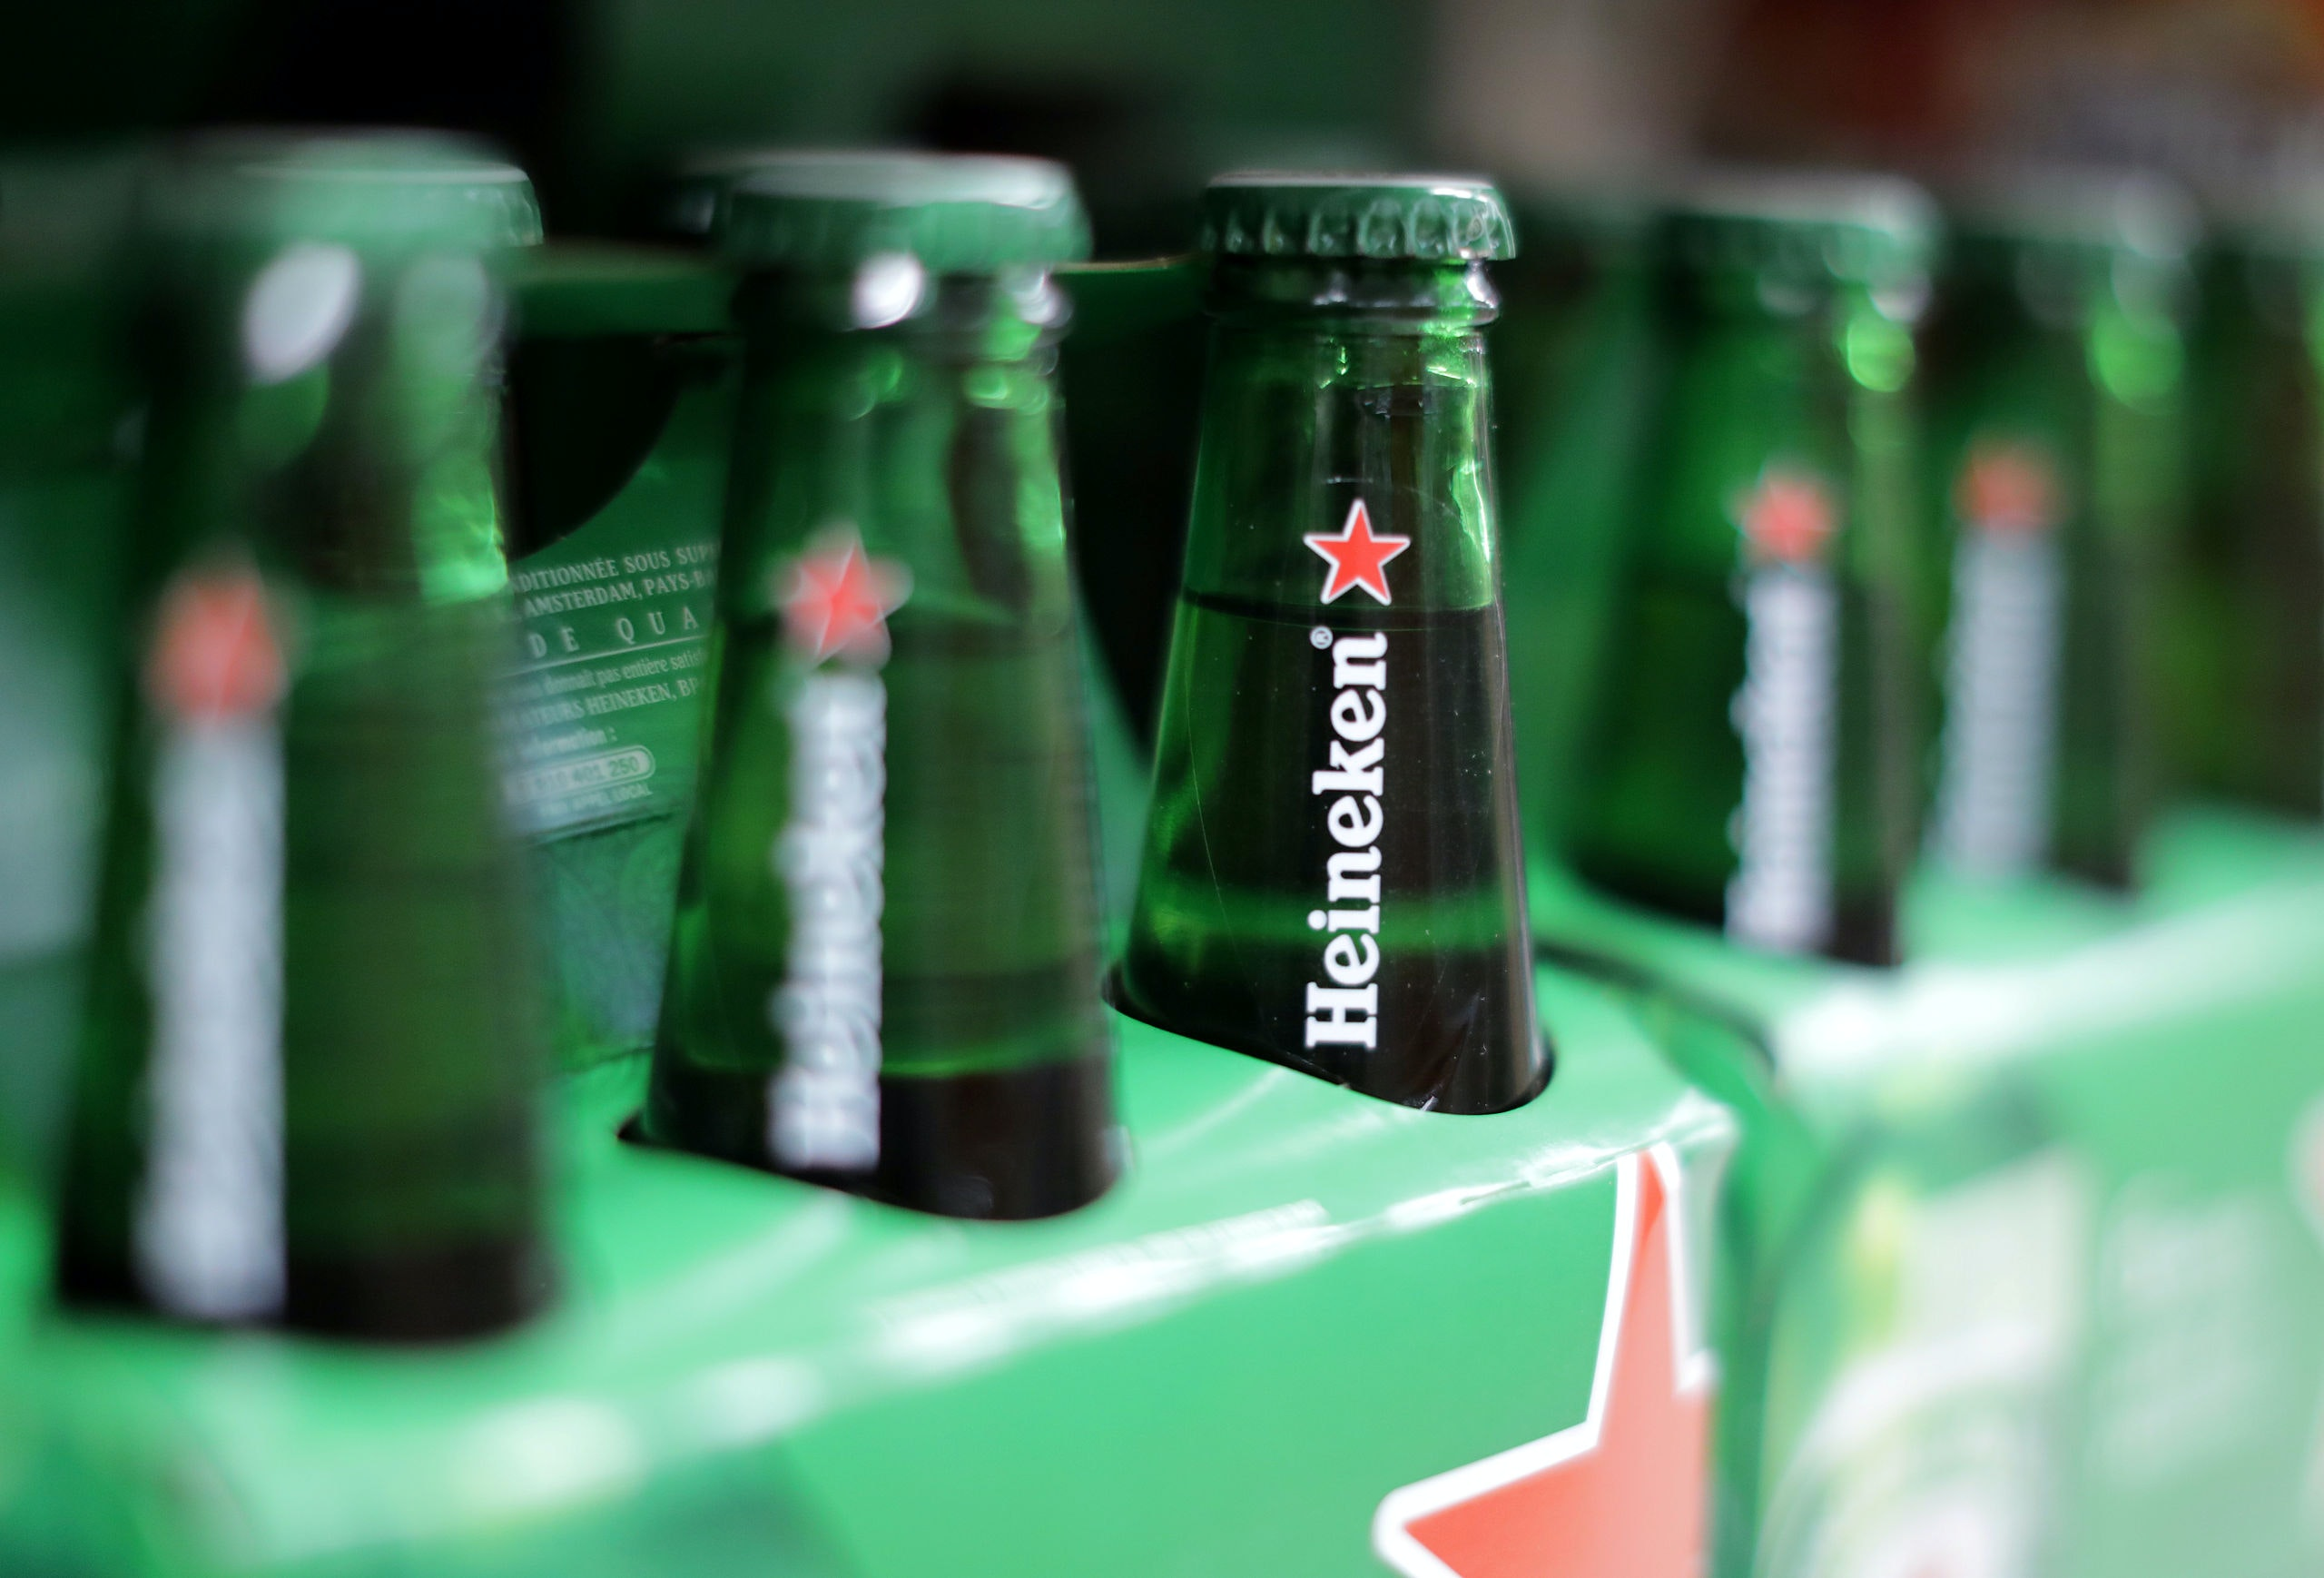 Packs of Heineken beer are displayed for sale in a Casino supermarket in Nice, France, January 16, 2017. REUTERS/Eric Gaillard - RC15706842E0